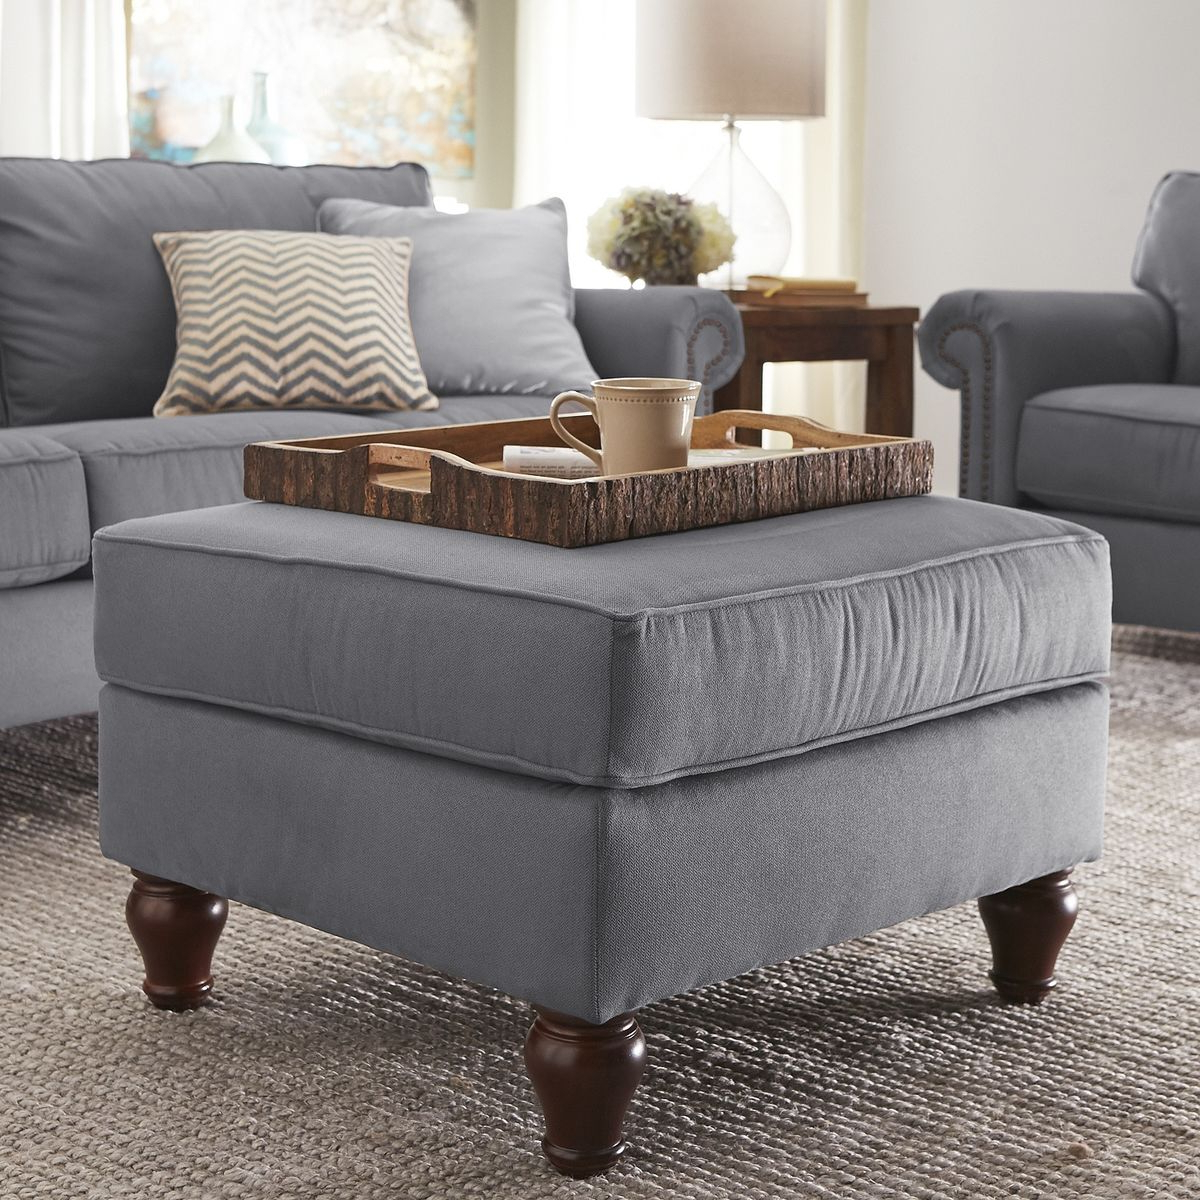 Alton Fabric Ottoman Coffee Table Graphite Gray Upholstery Large Regarding Well Known Alton Cocktail Tables (View 3 of 20)